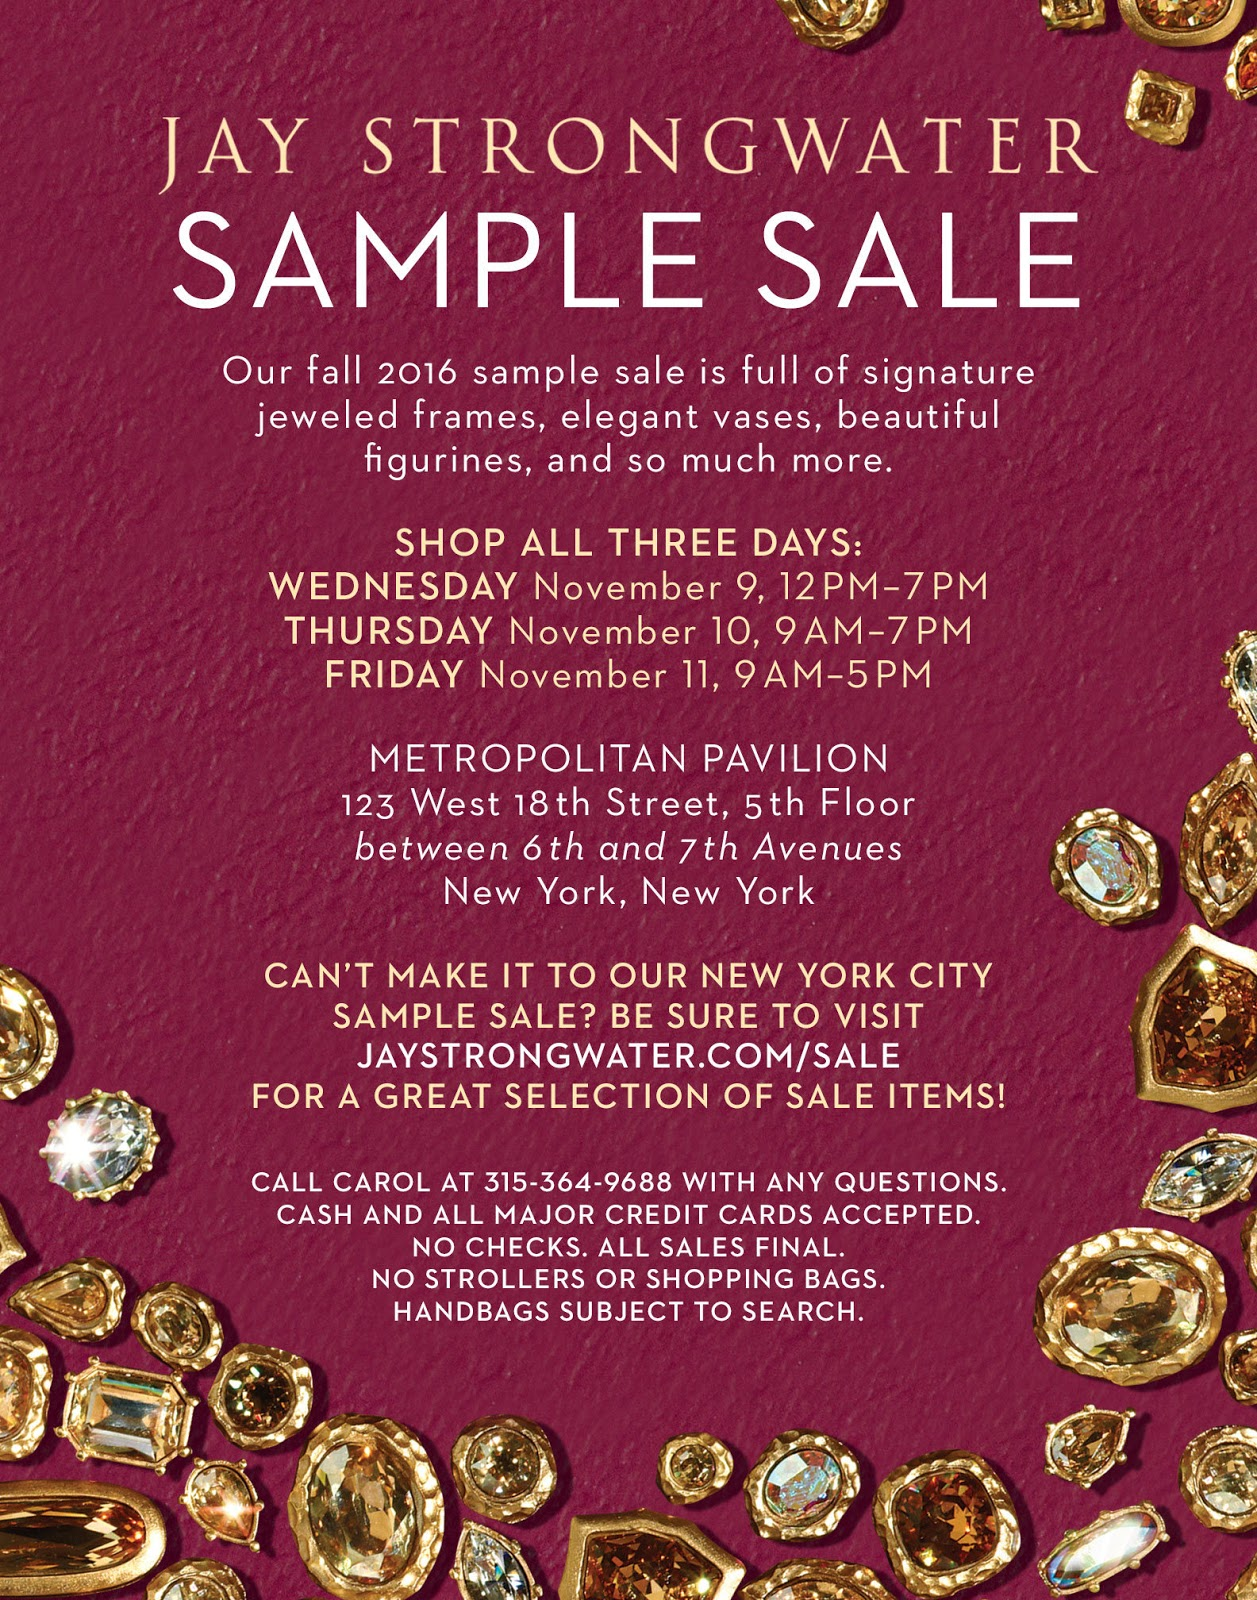 adba9f9c64e fashionably petite  Jay Strongwater + MacKenzie-Childs Sample Sale ...